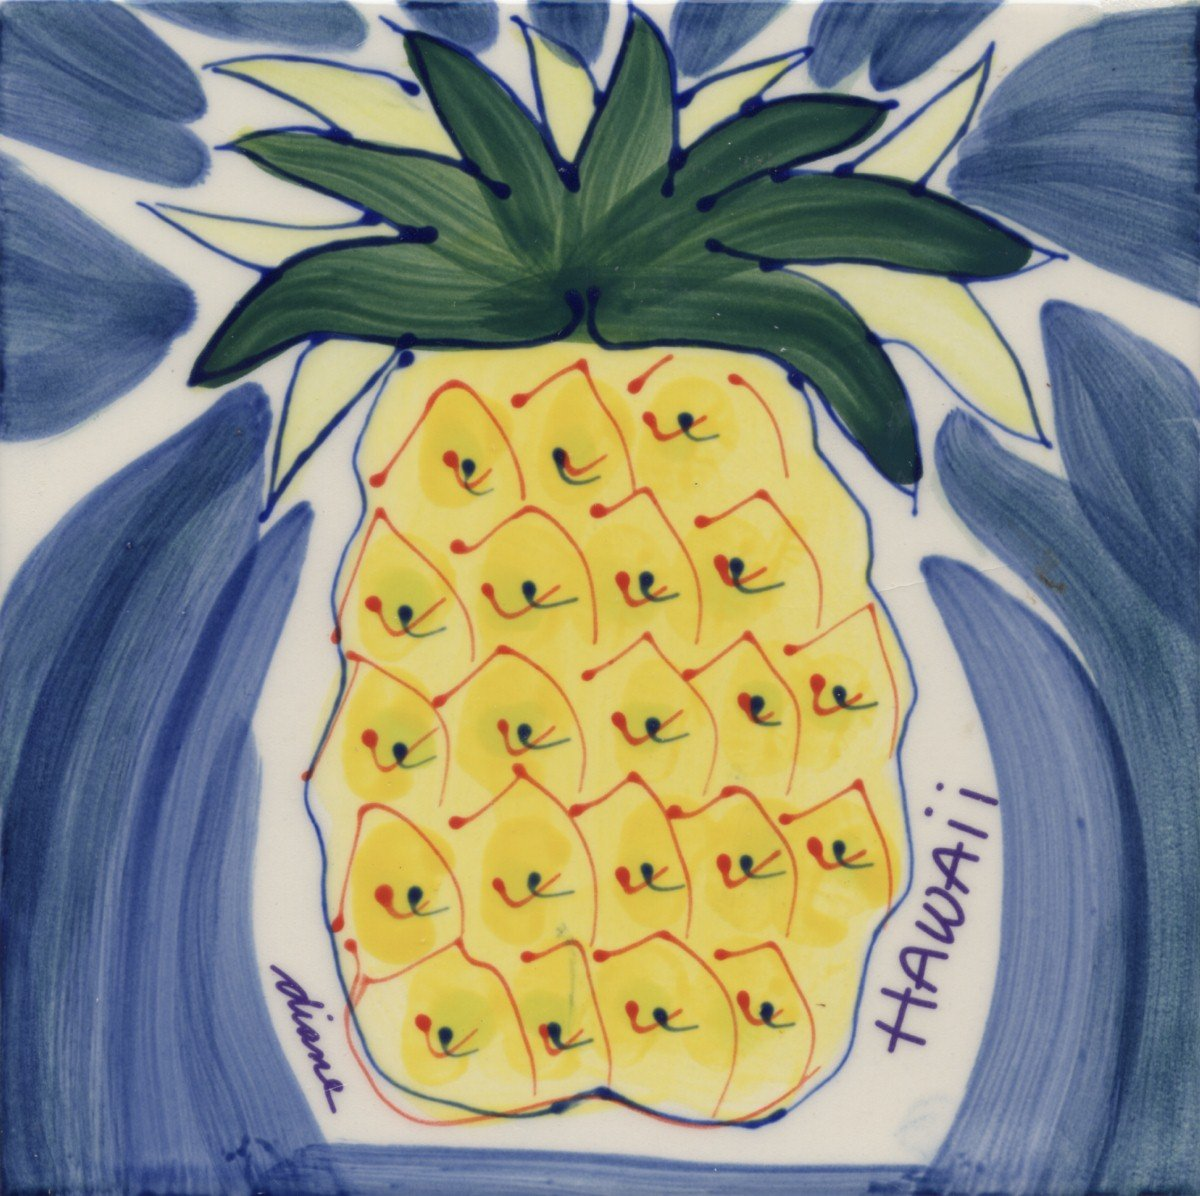 Amazon.com: Hawaii Tropical Decorative Tile or Trivet by Diane ...